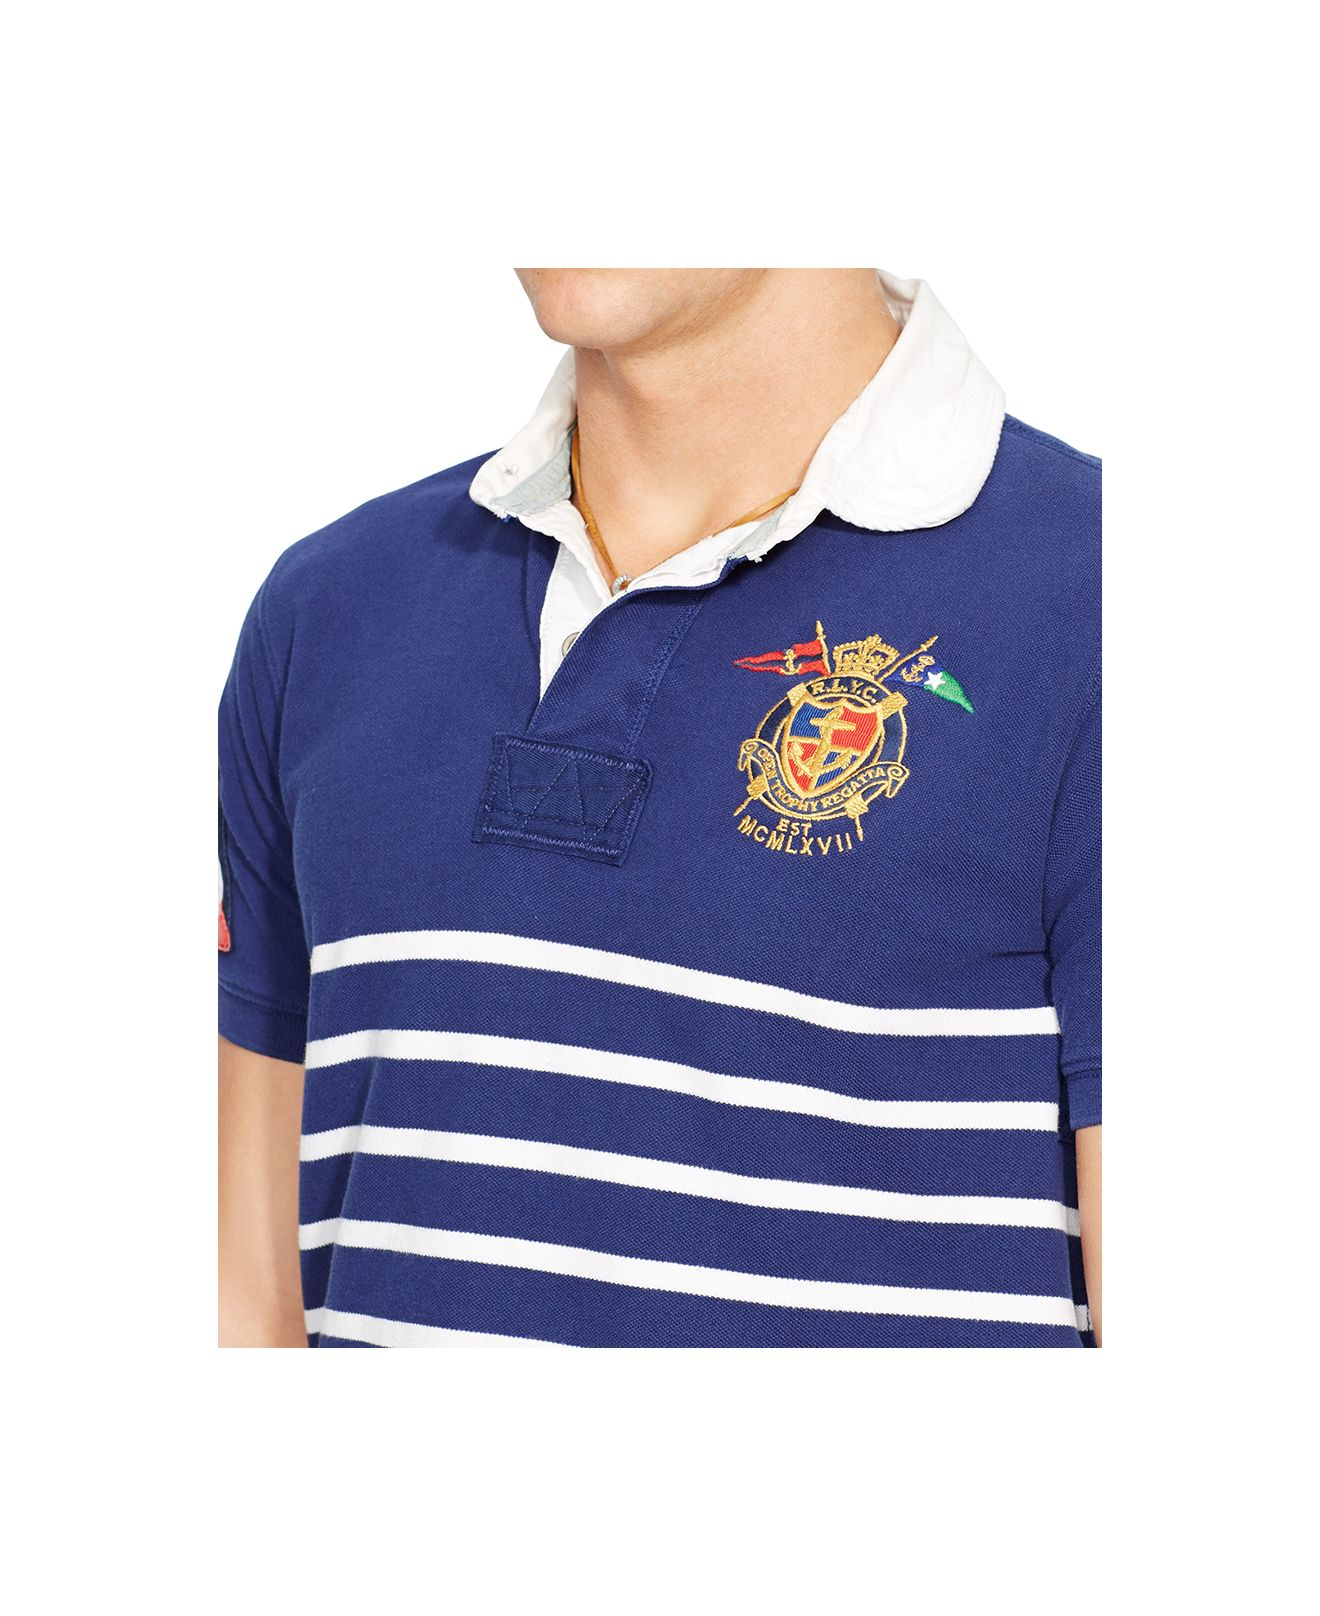 9c7e8fd0265191 Polo Ralph Lauren Striped Yacht Club Rugby Shirt in Blue for Men - Lyst